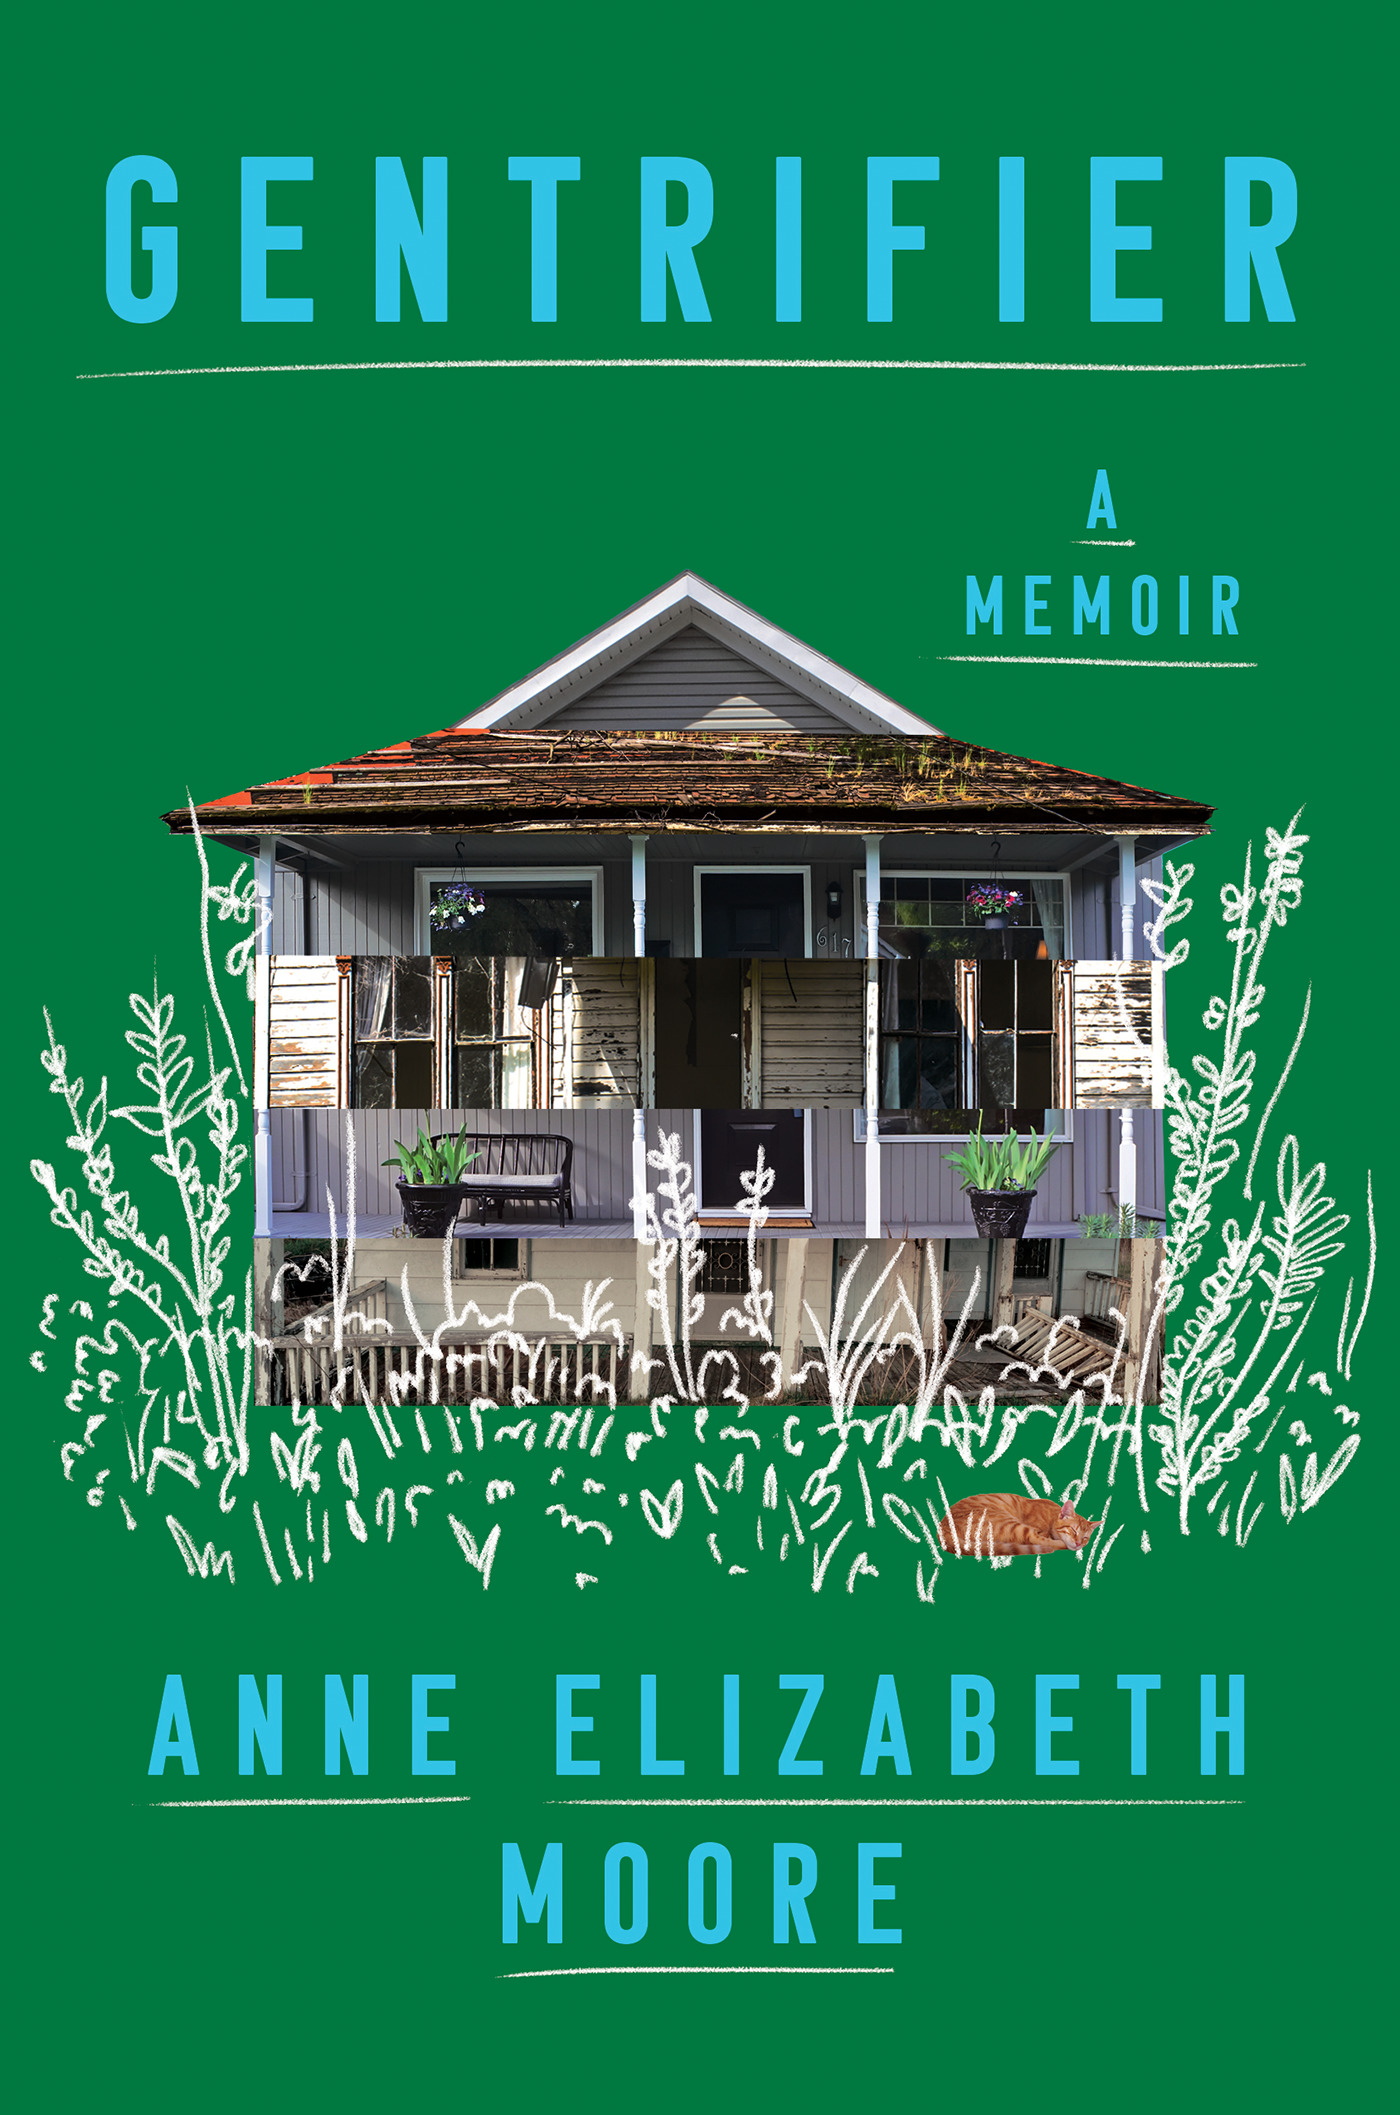 Book Launch: Gentrifier by Anne Elizabeth Moore in conversation with Paul Lisicky